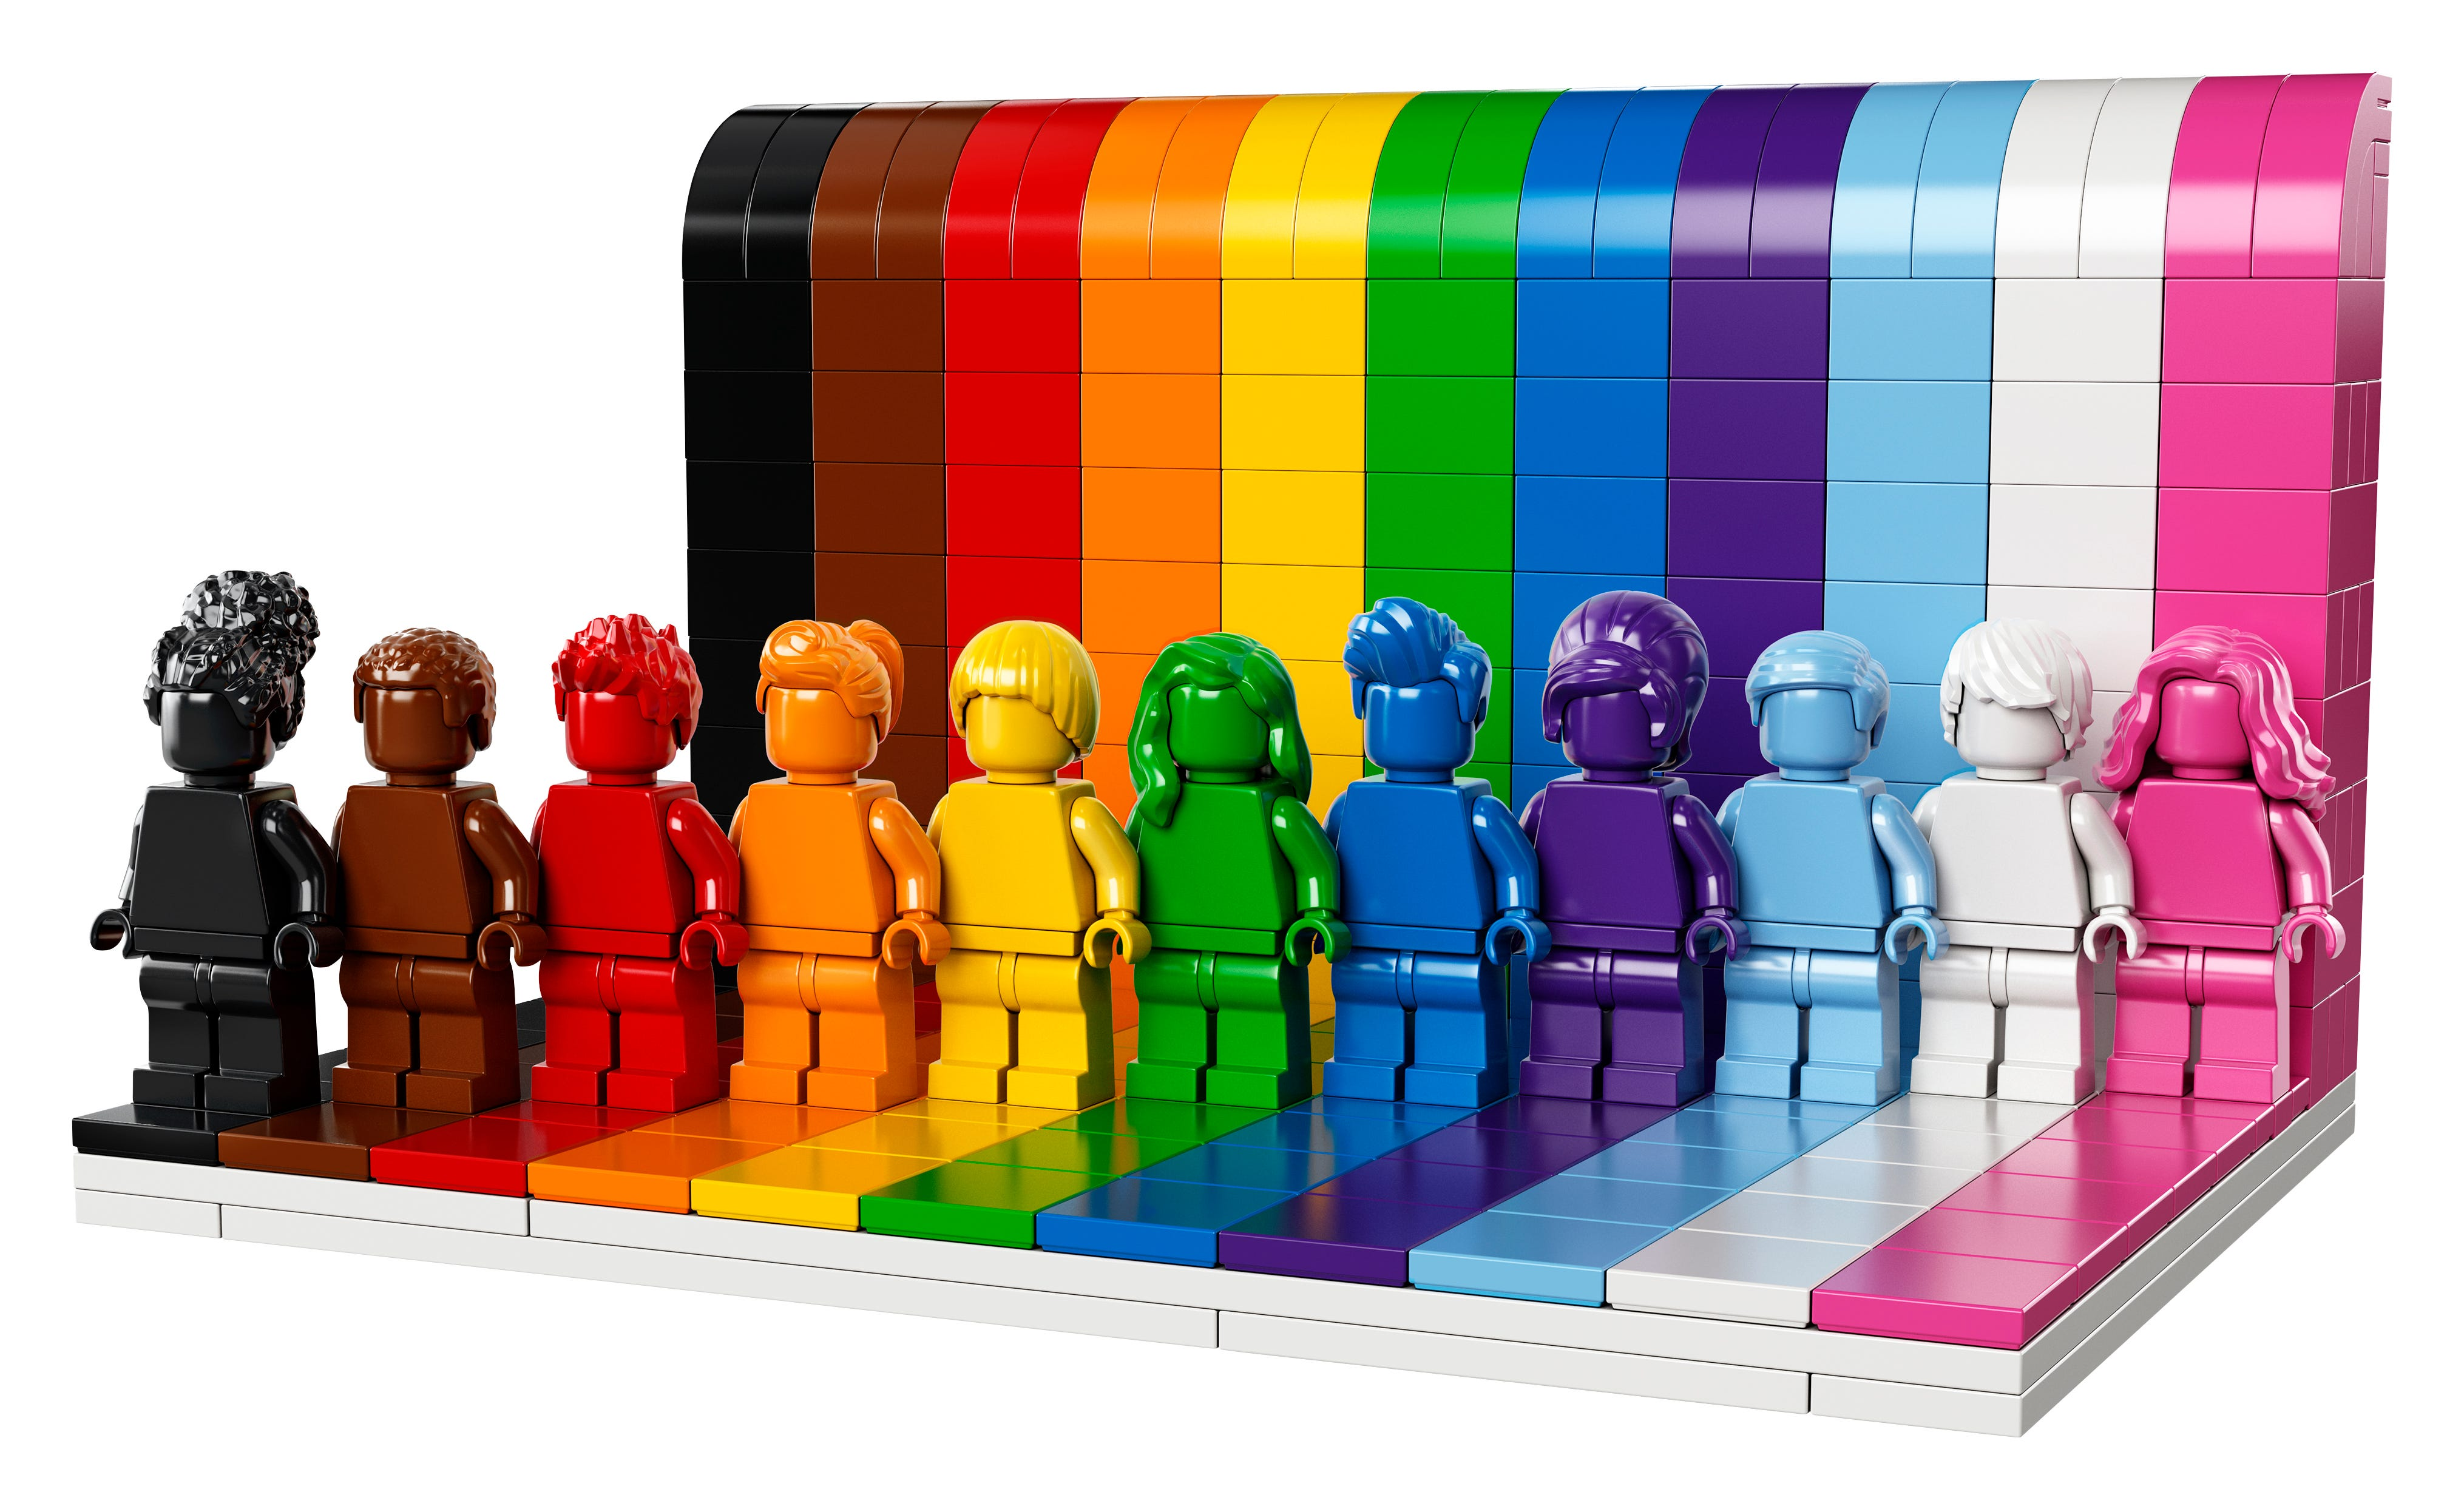 LEGO is launching its first-ever LGBTQ-themed set ahead of Pride Month. The set includes 11 monochrome figures each with its own hairstyle and rainbow color.